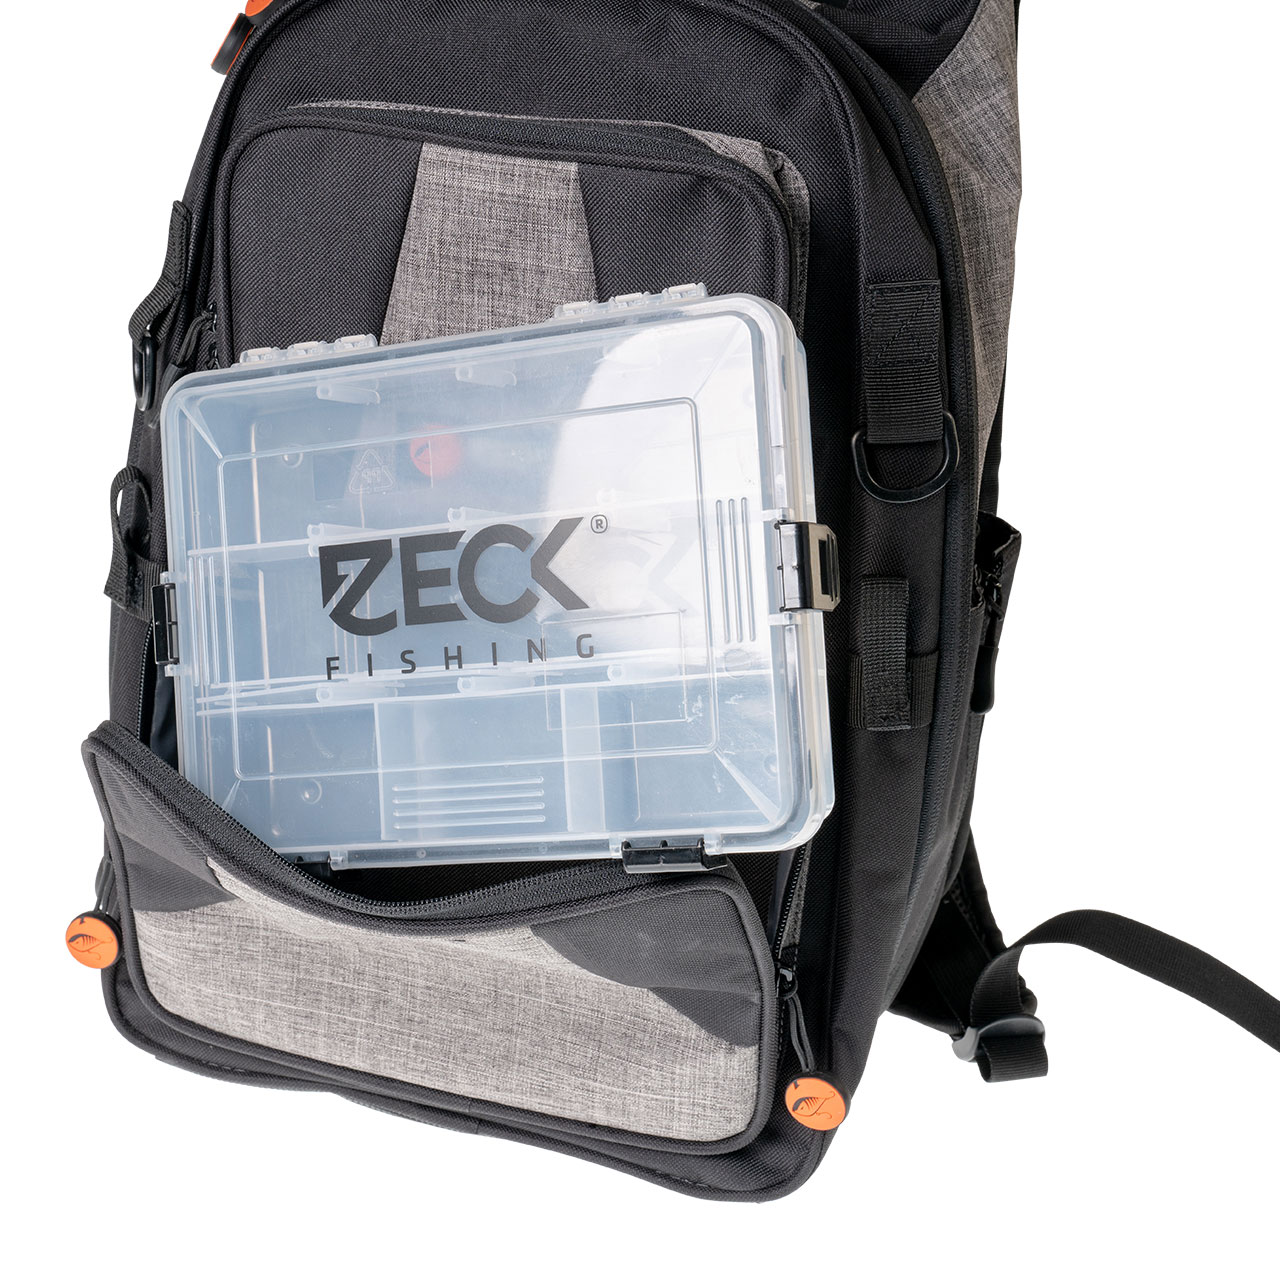 Zeck Raubfisch Backpack 24000 + Tackle Box WP S